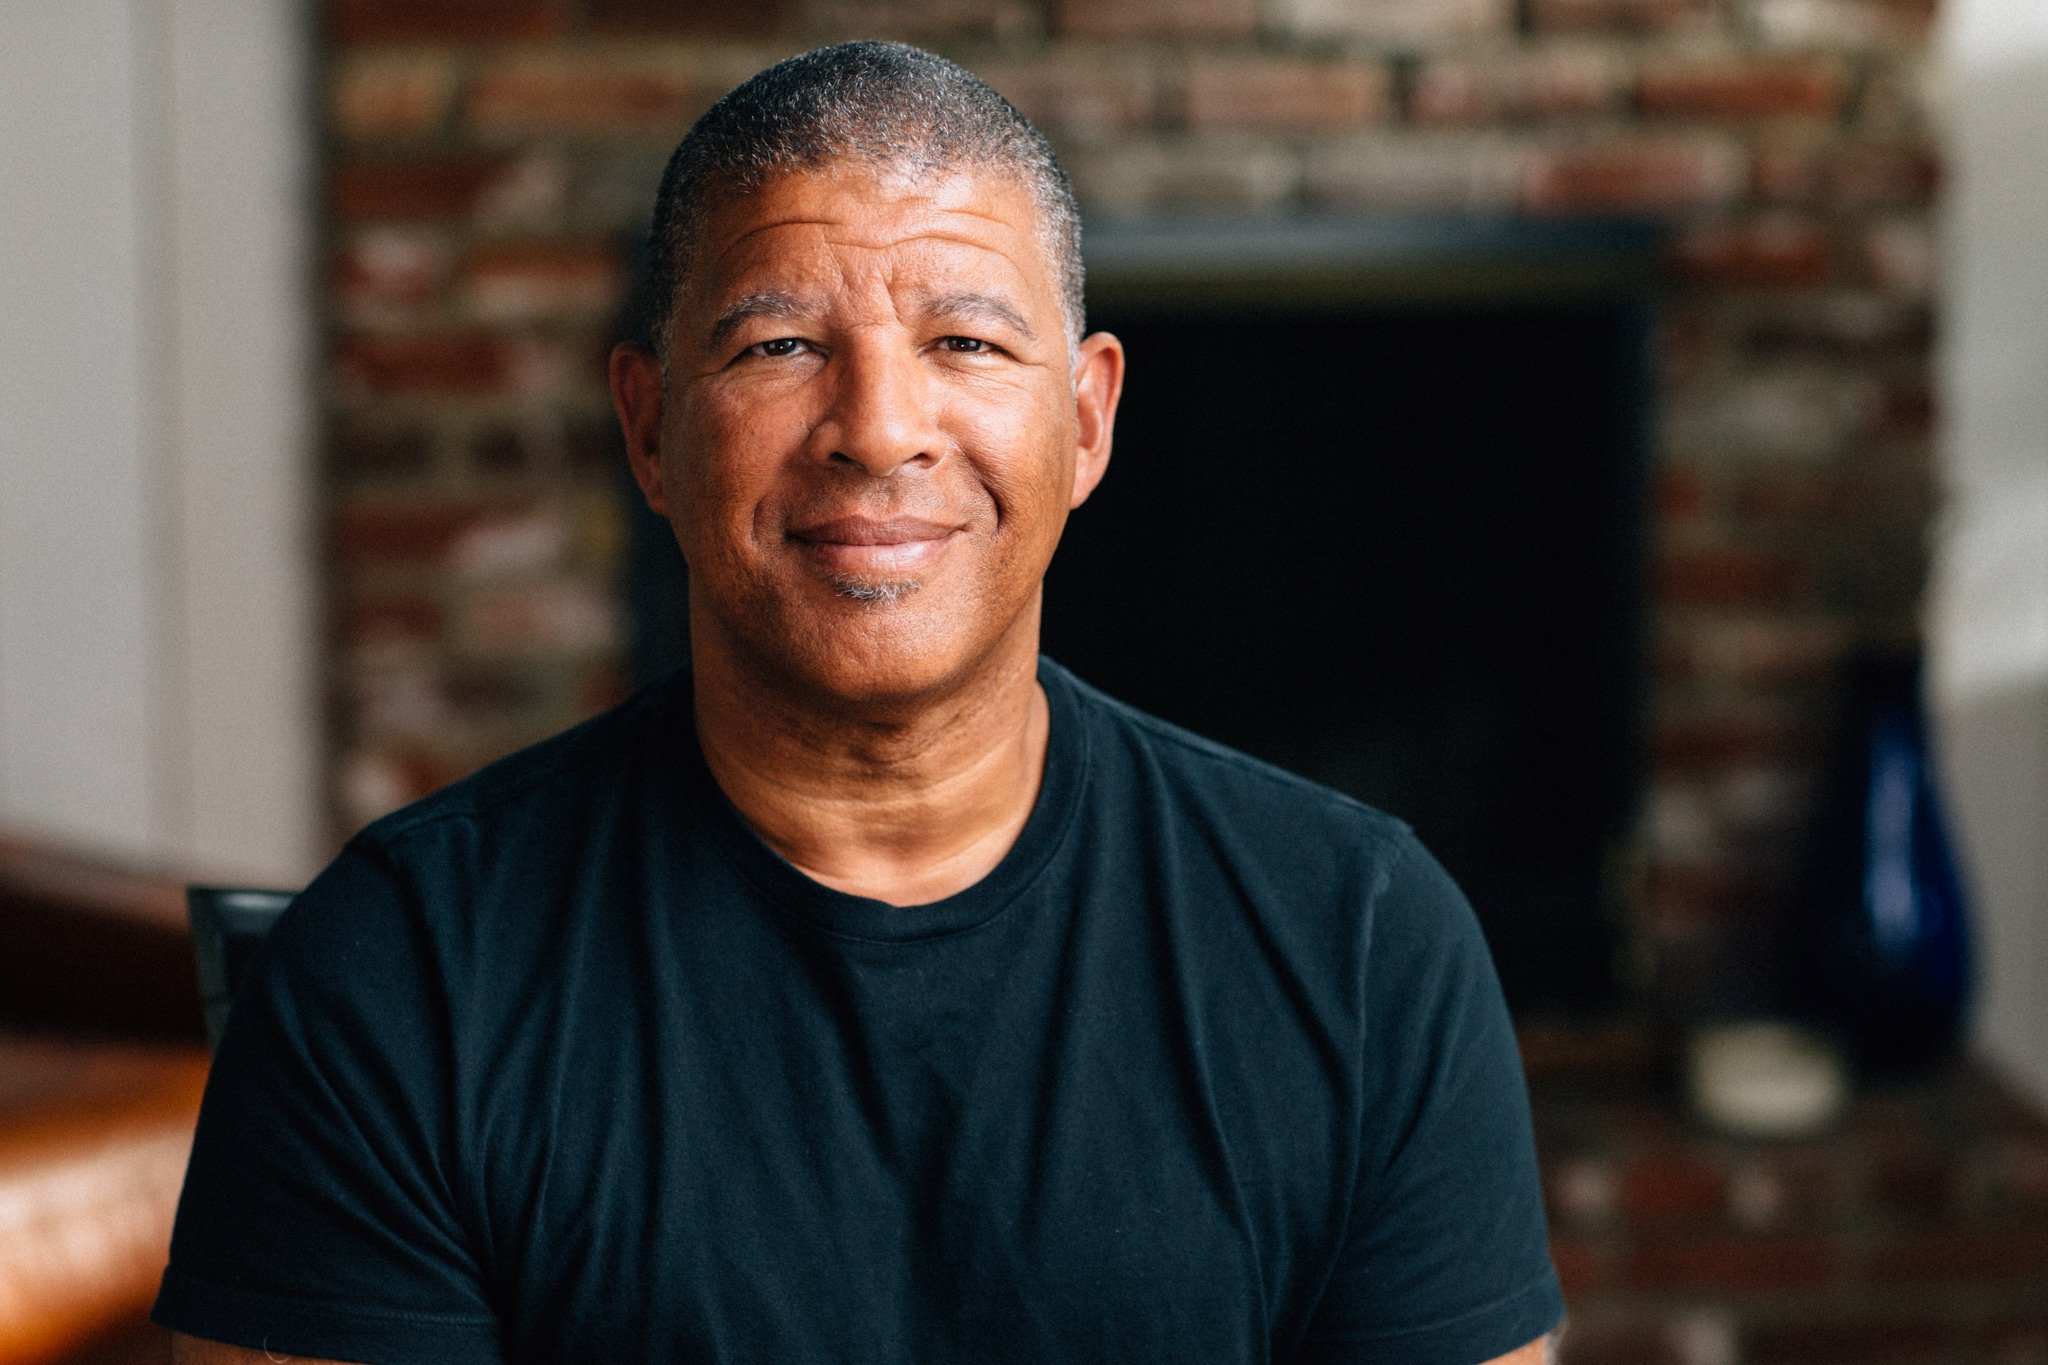 Peter Ramsey Interview Faceplant Million Stories. I recently had the honor of interviewing the incredible Oscar-Winning Director Peter Ramsey. We talked a lot about his Faceplant feature in MillionStories.com. During the interview, we discussed his personal faceplant and life after he bounced back from bad to recovery.